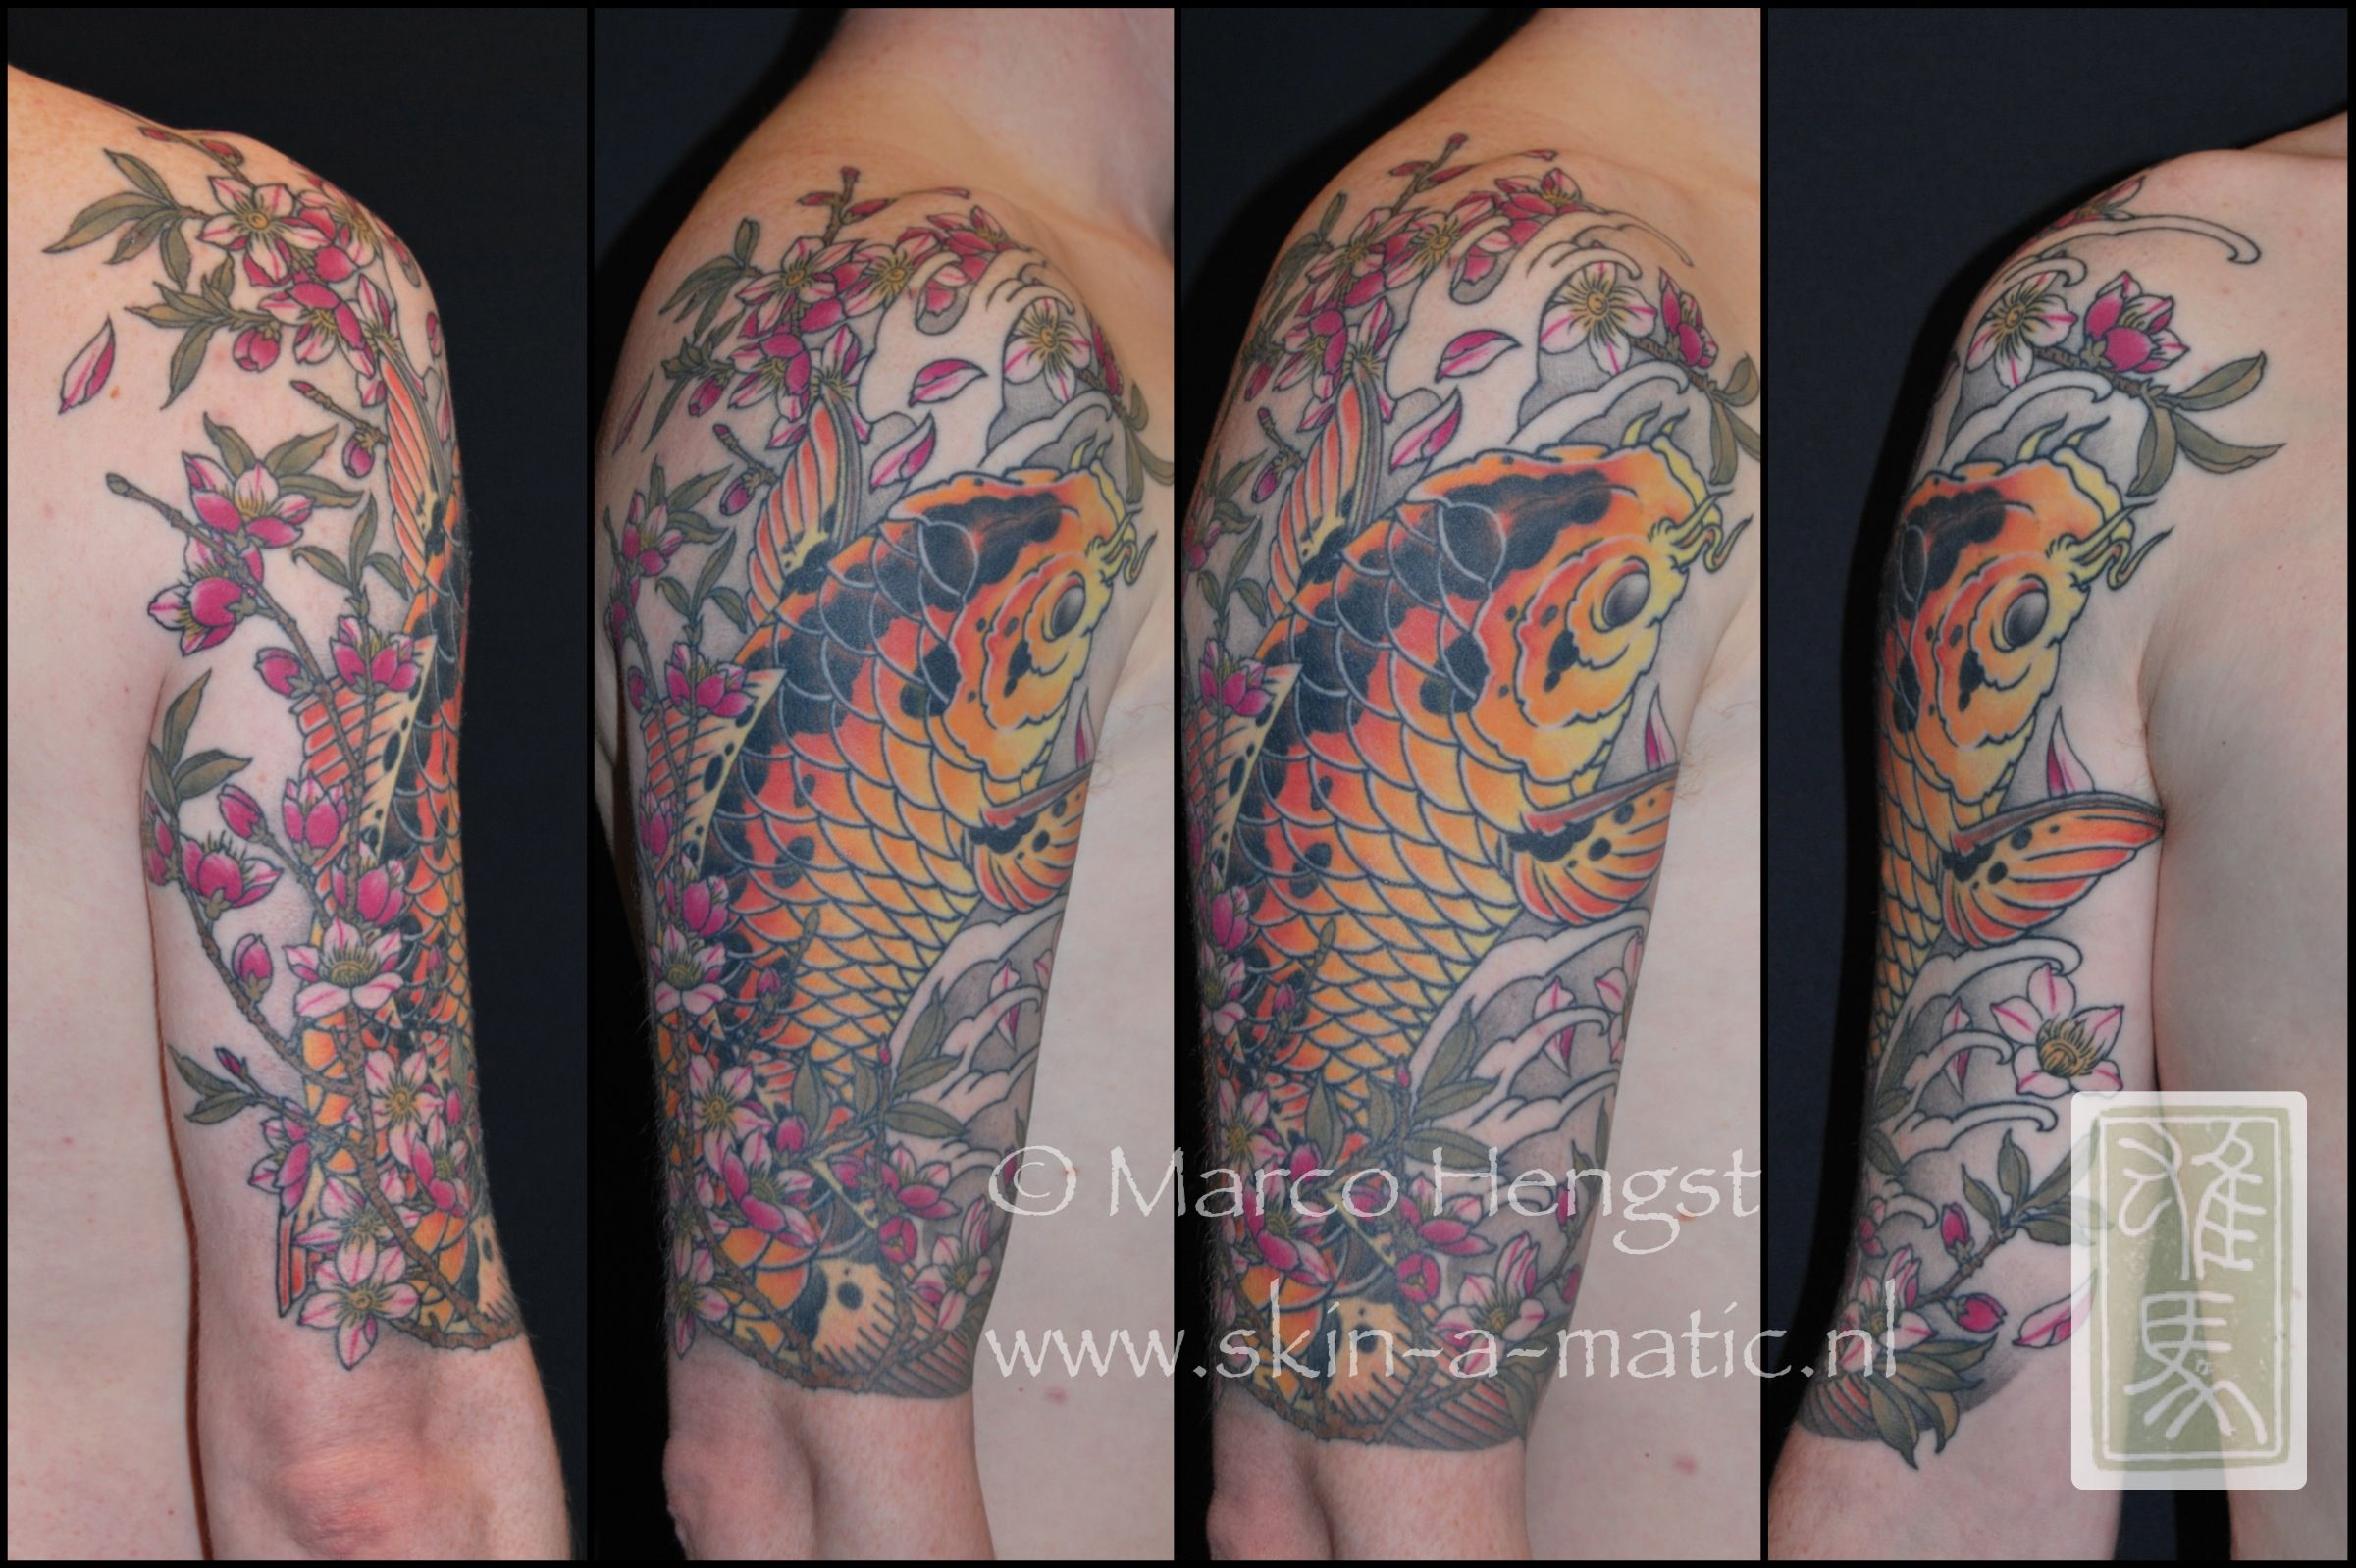 Japanese calf tattoos by durb - Japanese Koi Tattoo Halve Sleeve Done By Marco Hengst At Skin A Matic